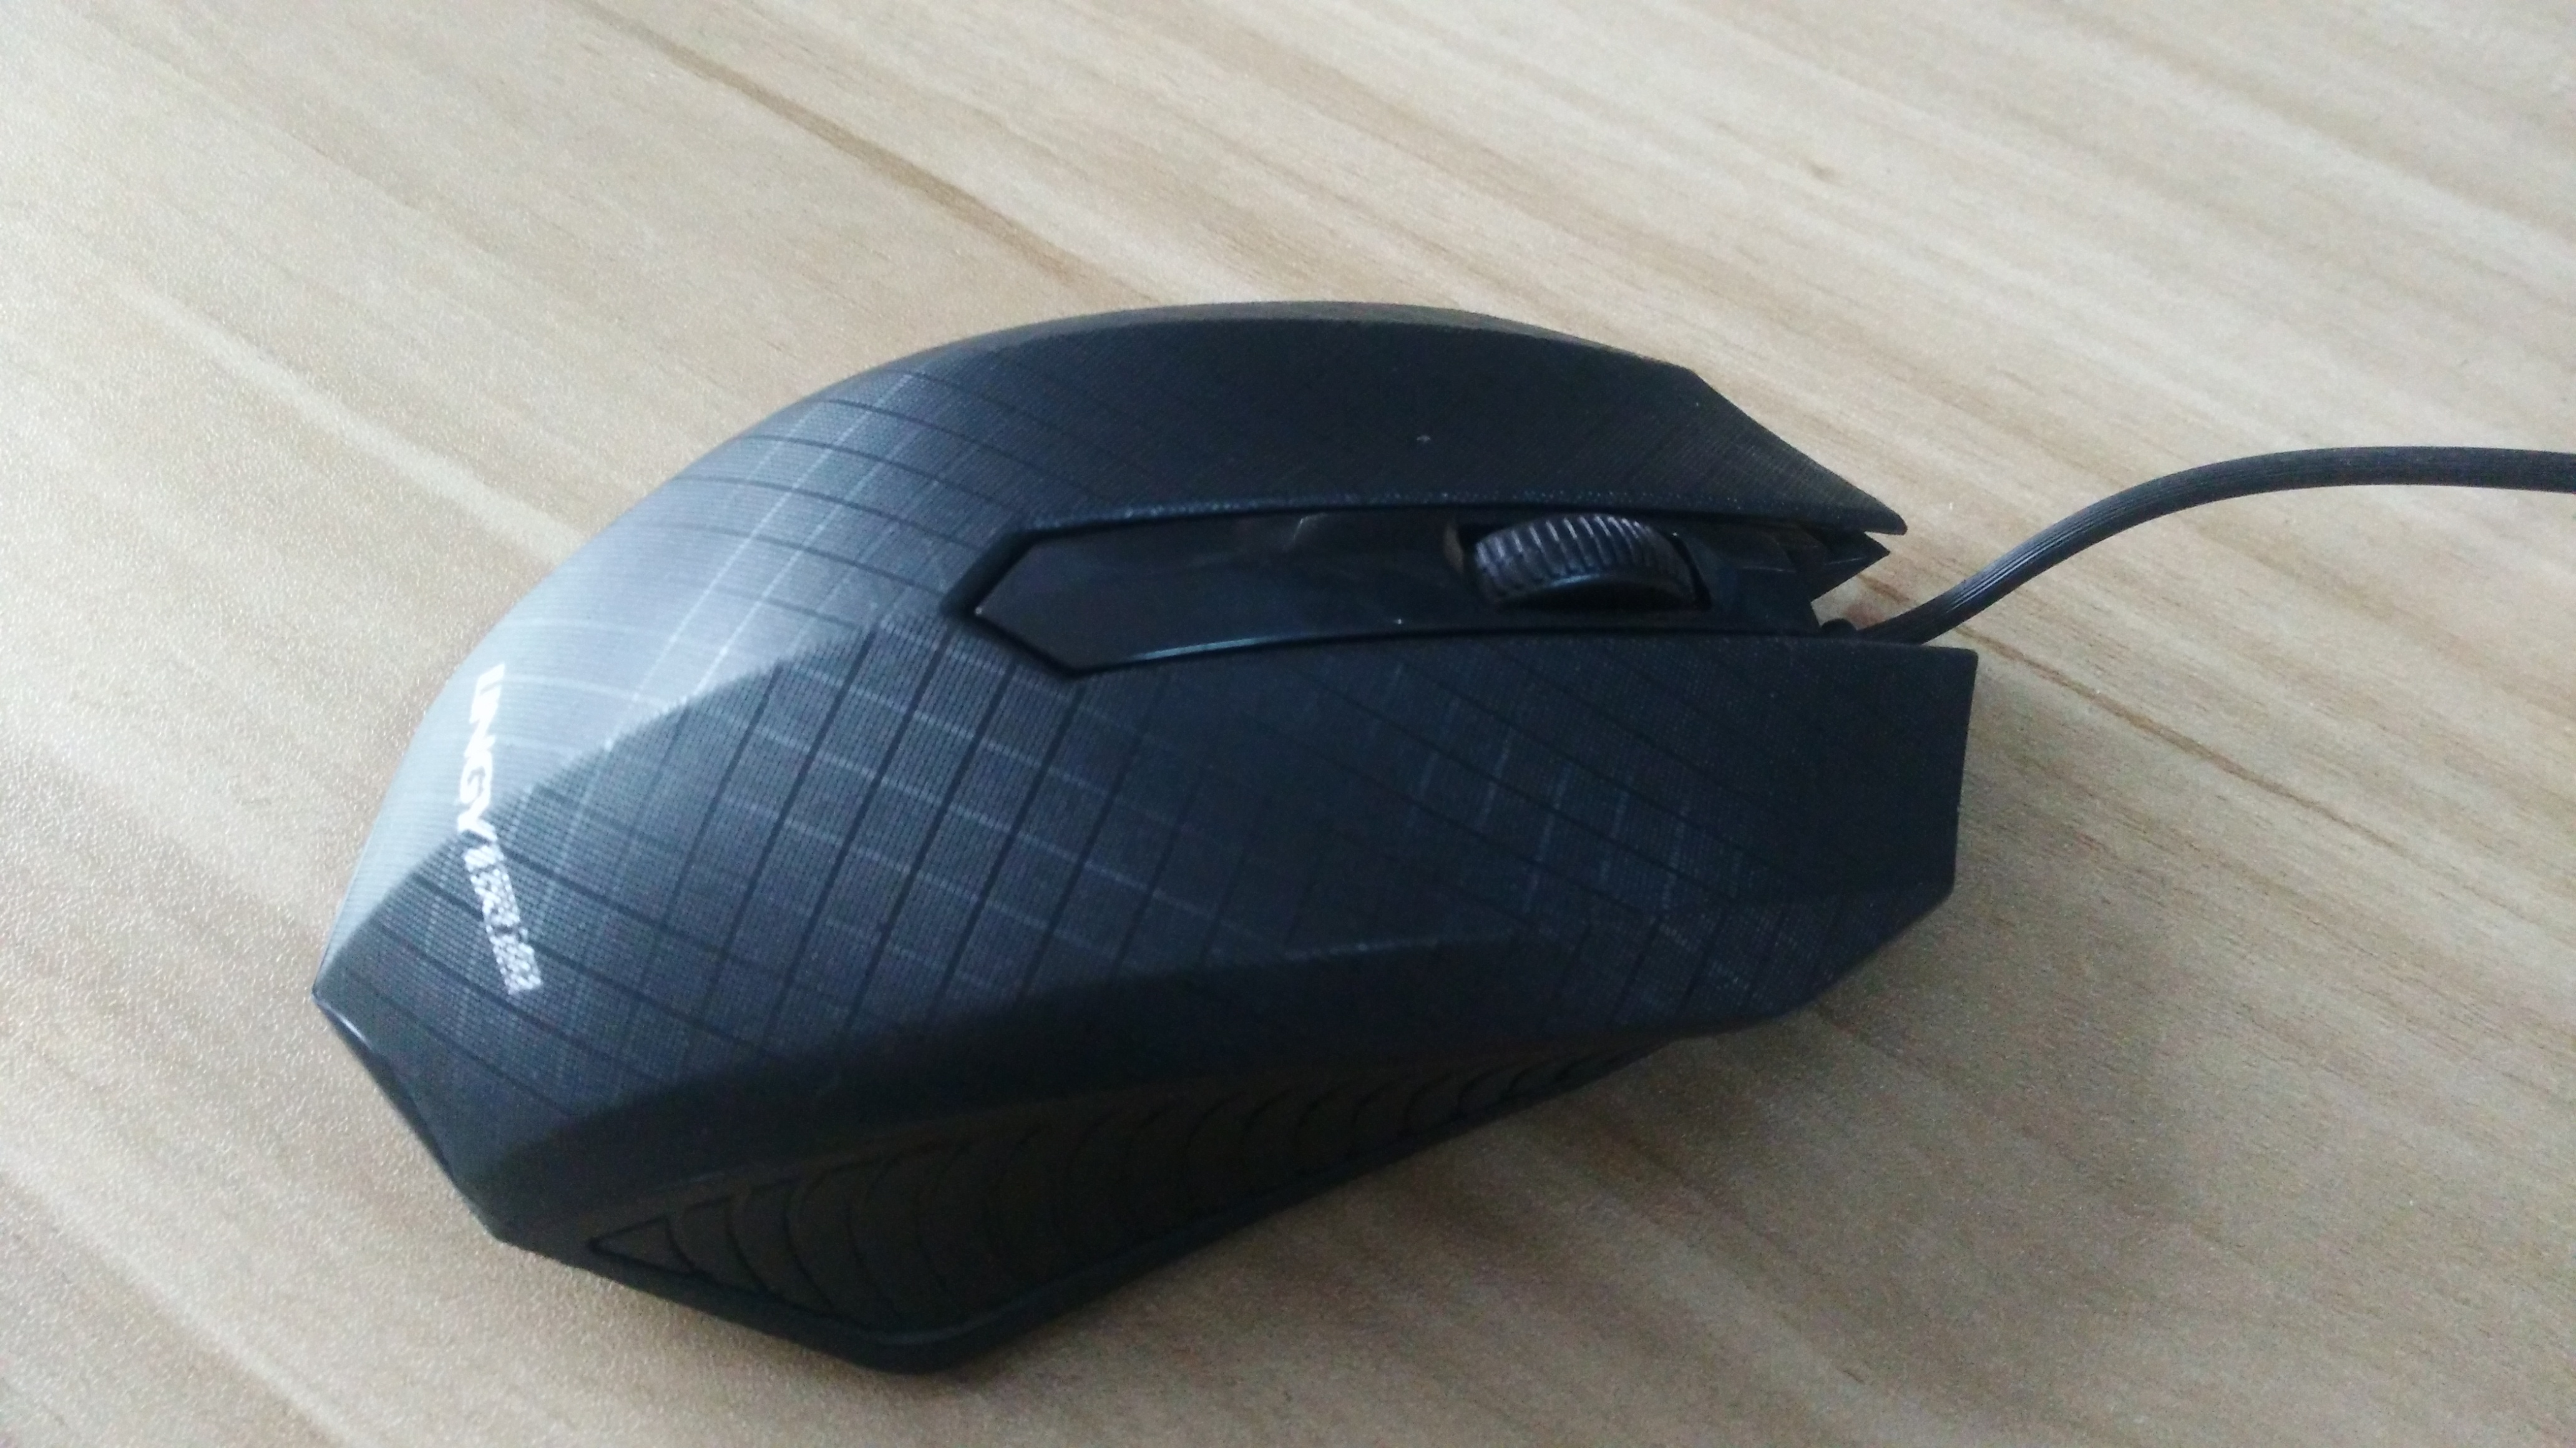 d03076f4b4b USD 6.52] Lingyi mouse USB wired office home mouse classic durable ...